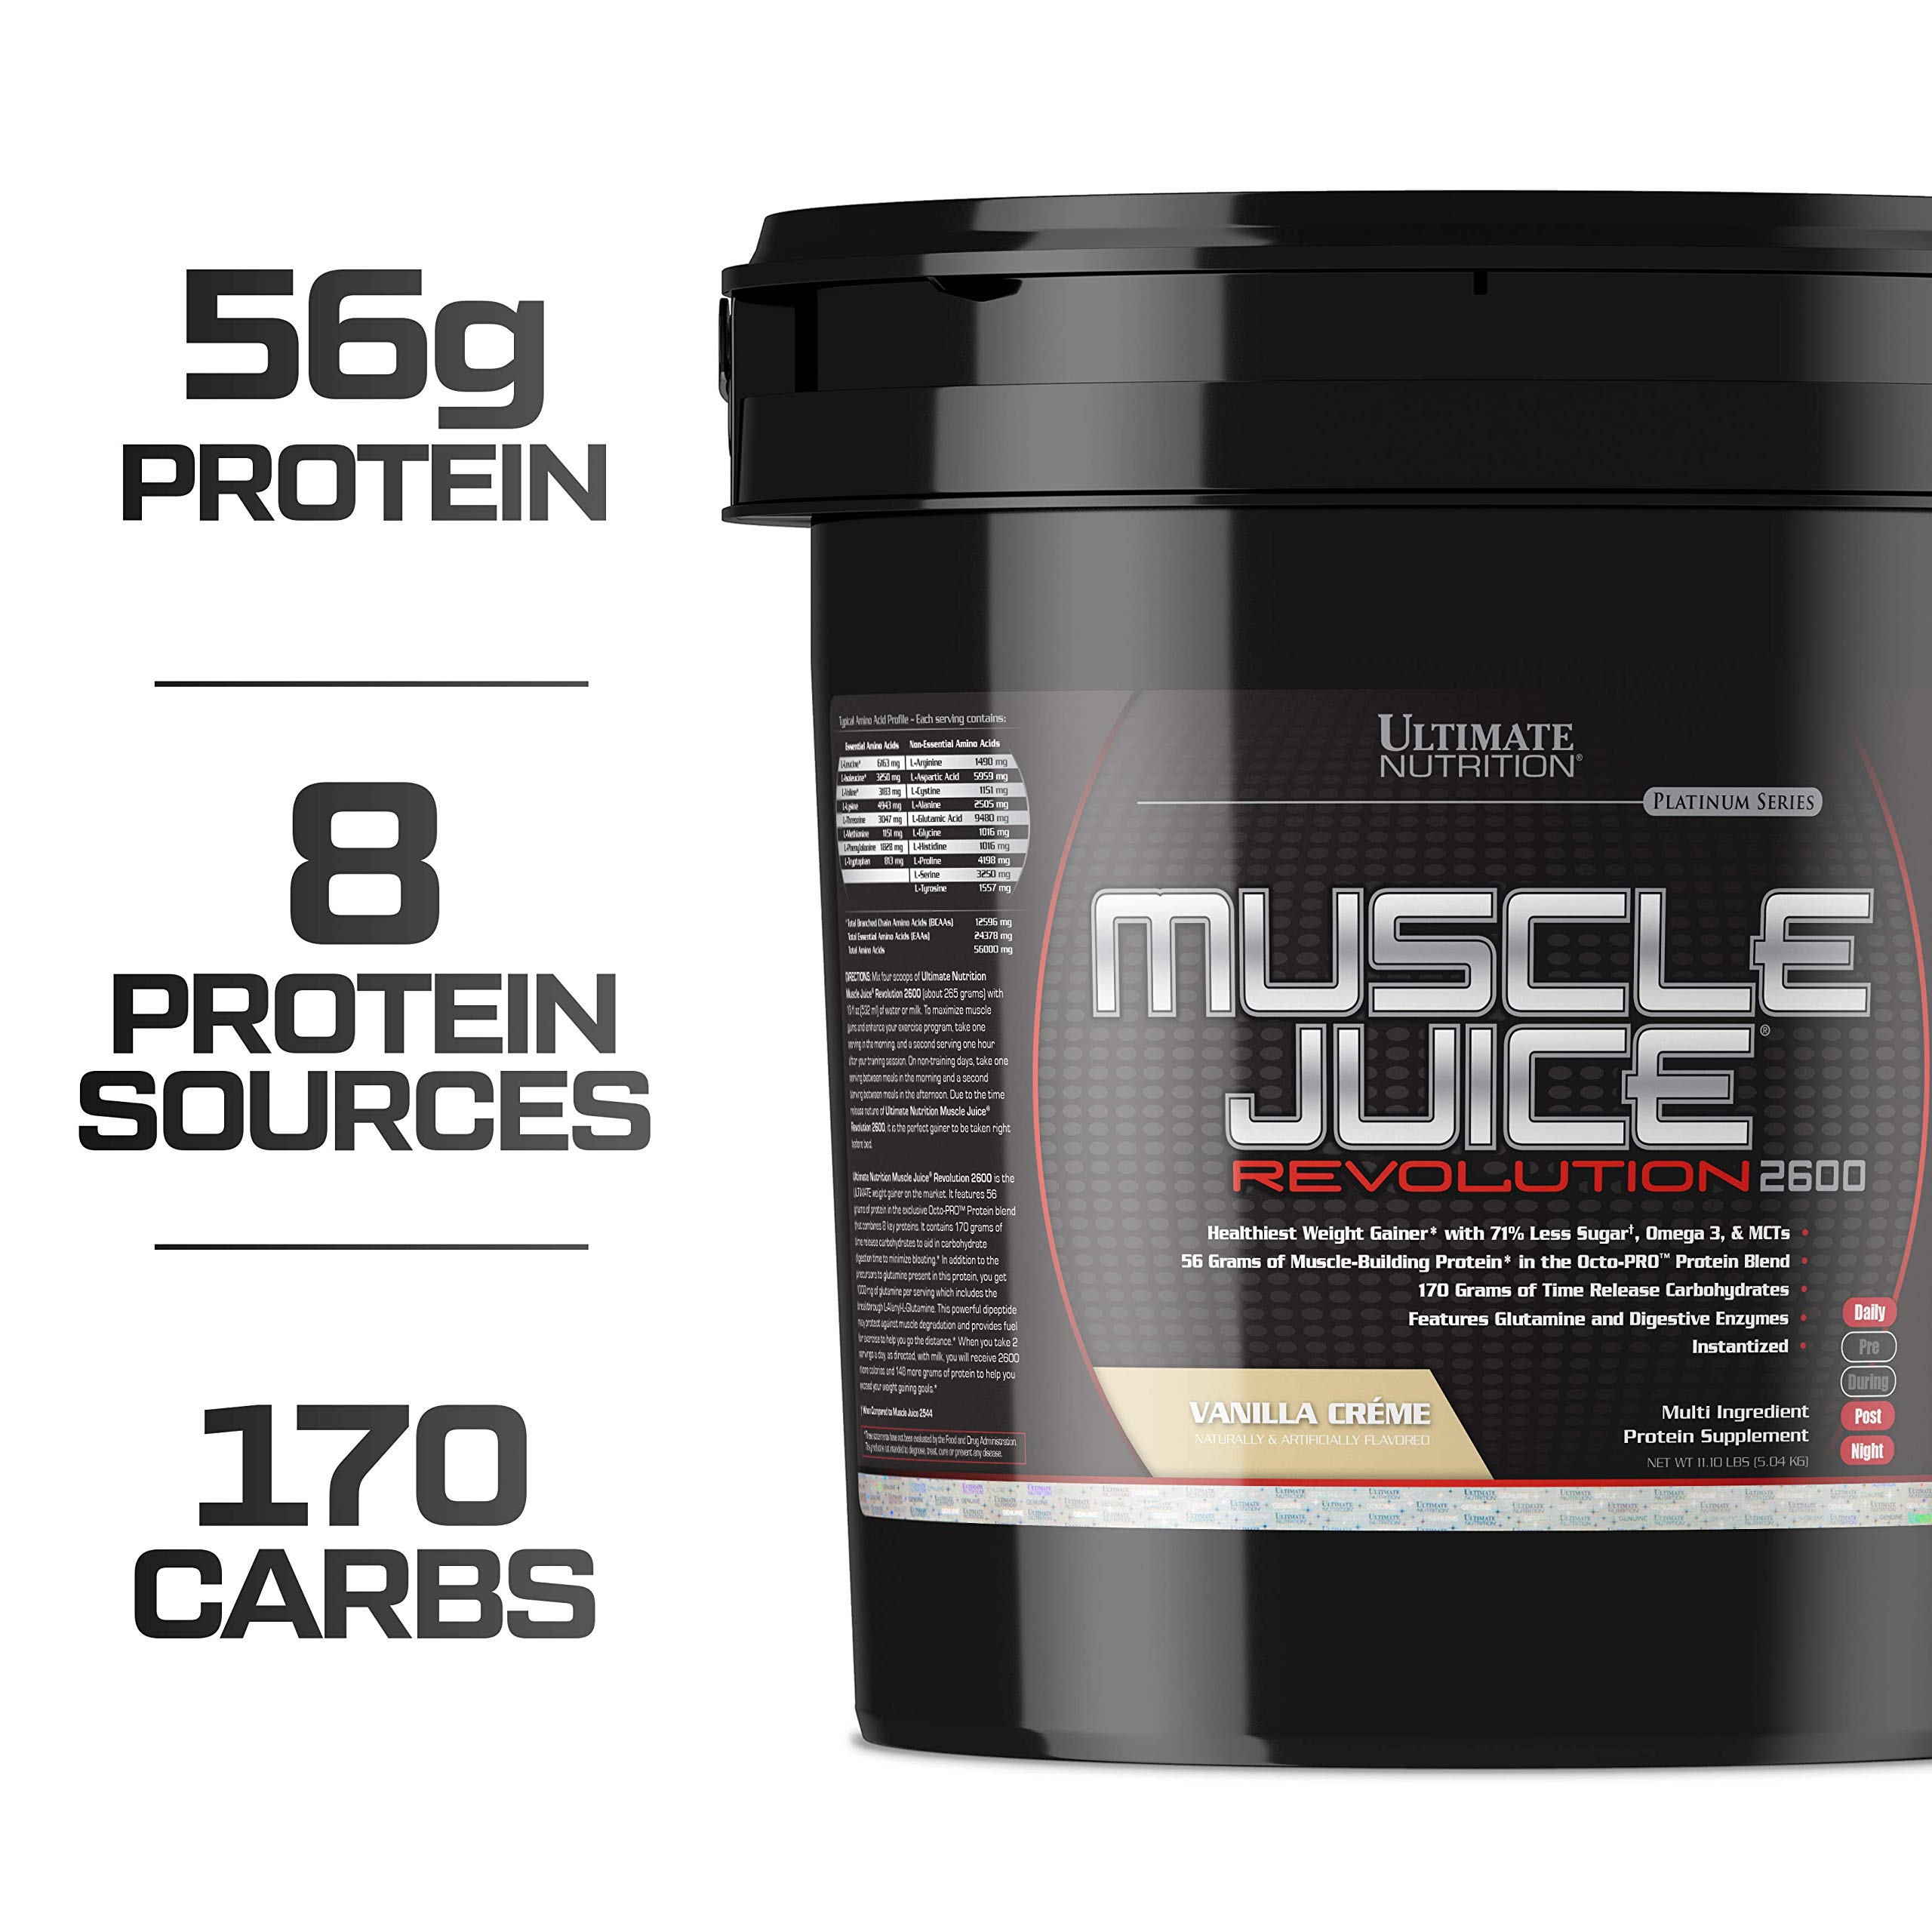 Ultimate Nutrition Muscle Juice Revolution Weight and Muscle Gainer Protein Powder with Egg Protein, Micellar Casein, and Maltodextrin, Vanilla, 11.1 Pounds by Ultimate Nutrition